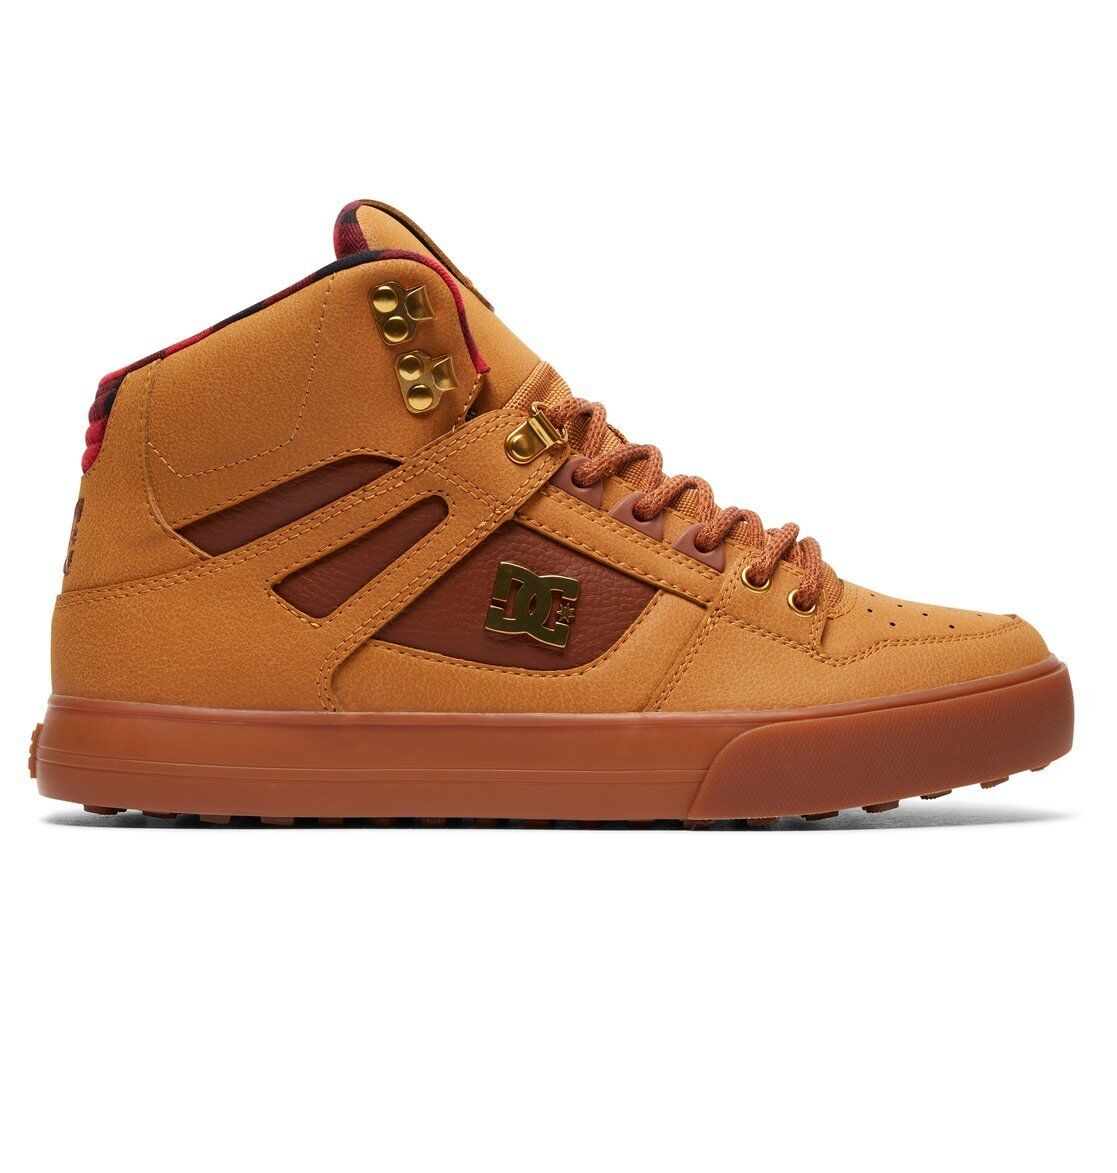 DC ZAPATOS zapatos spartan high wnt trigo negro chocolate